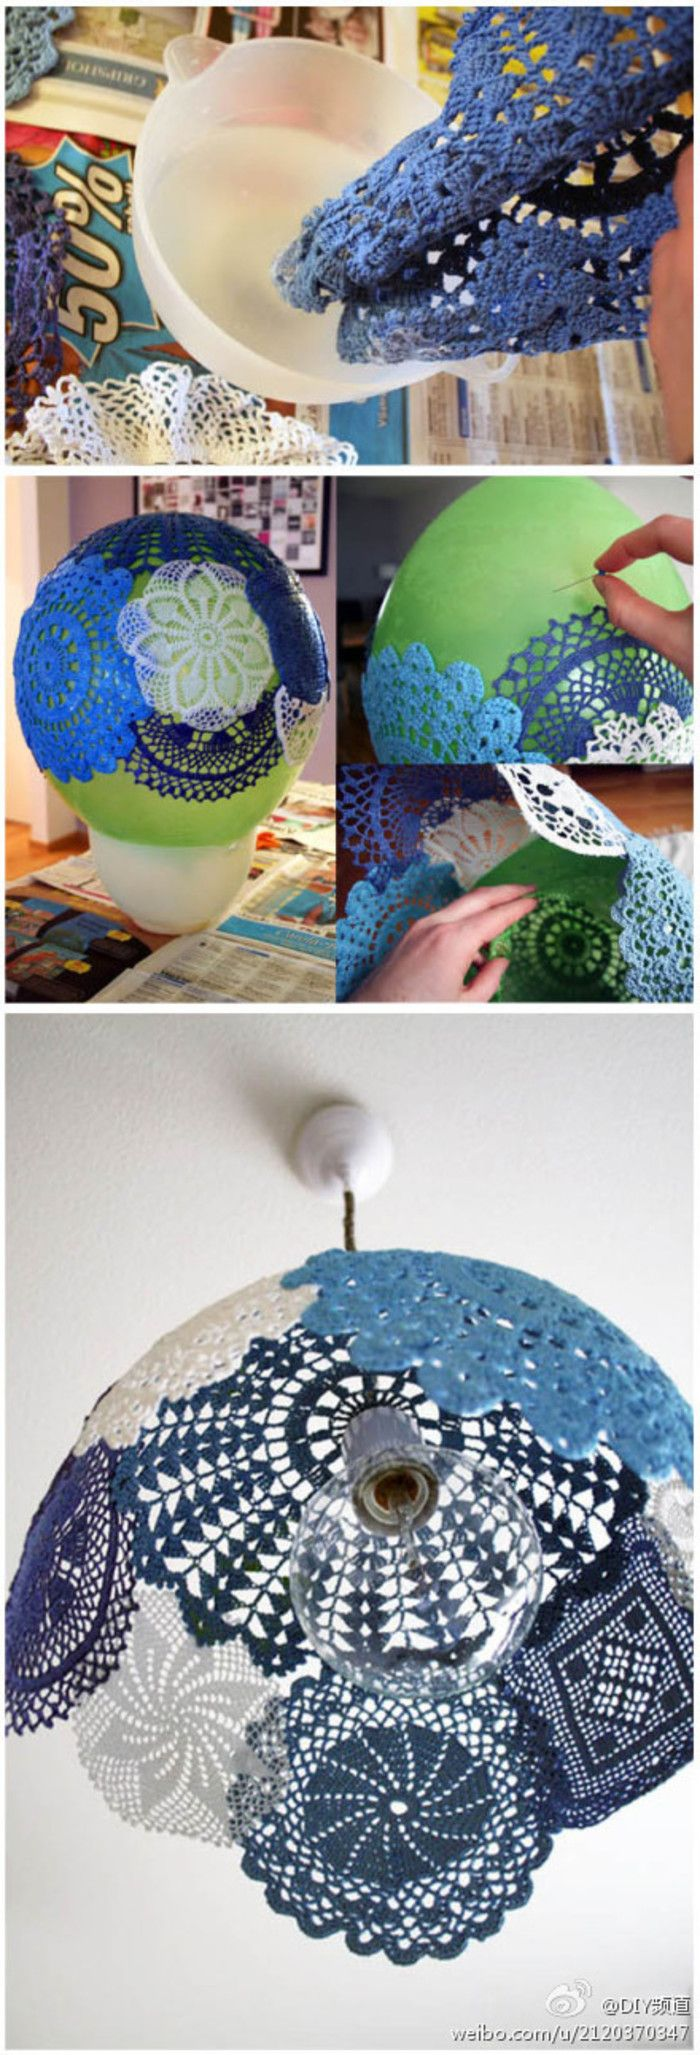 DIY Doily Decoration Ideas